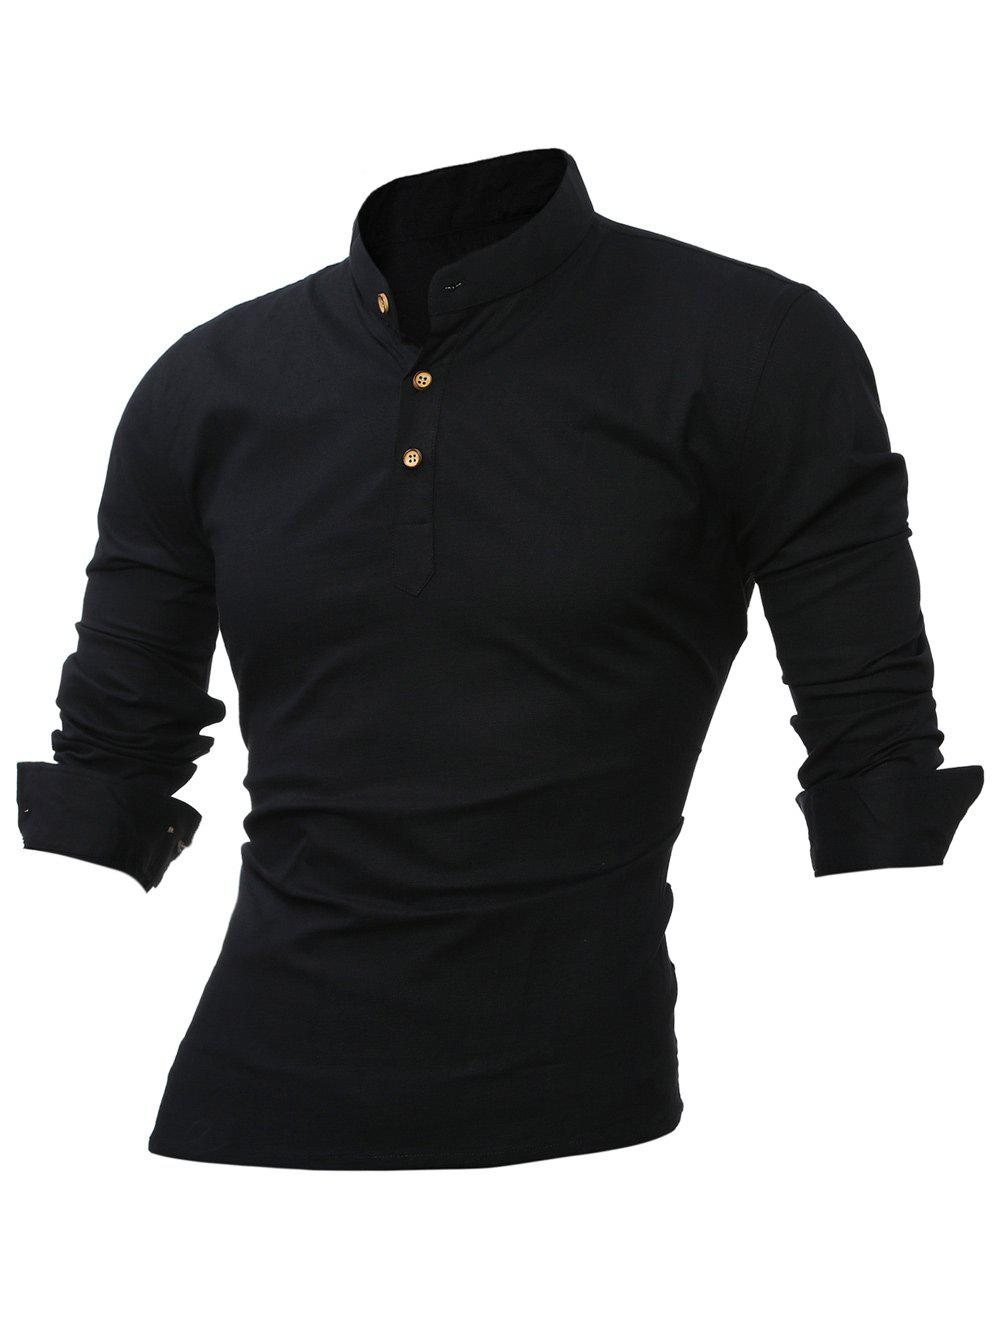 Long Sleeve Mandarin Collar Button Up Tee - BLACK 5XL